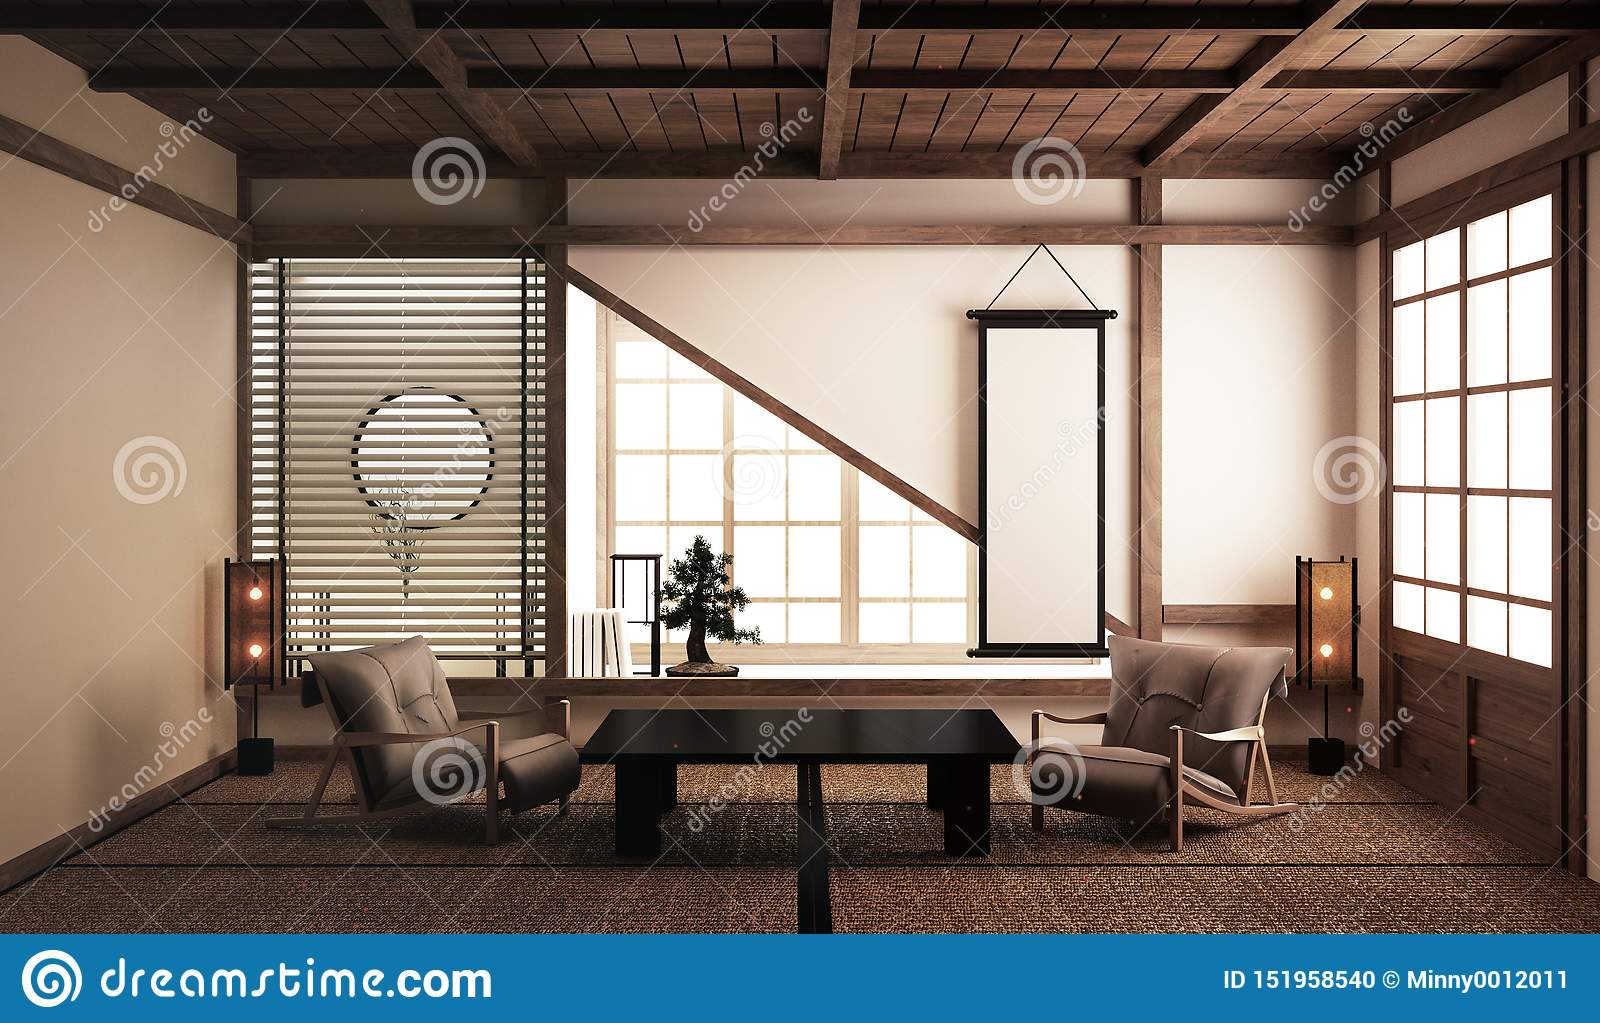 Interior Design Modern Living Room With Low Table Arm Chairs Bonsai Tree And Decoration Japanese Style 3d Rendering Stock Illustration Illustration Of Hostel Korean 151958540